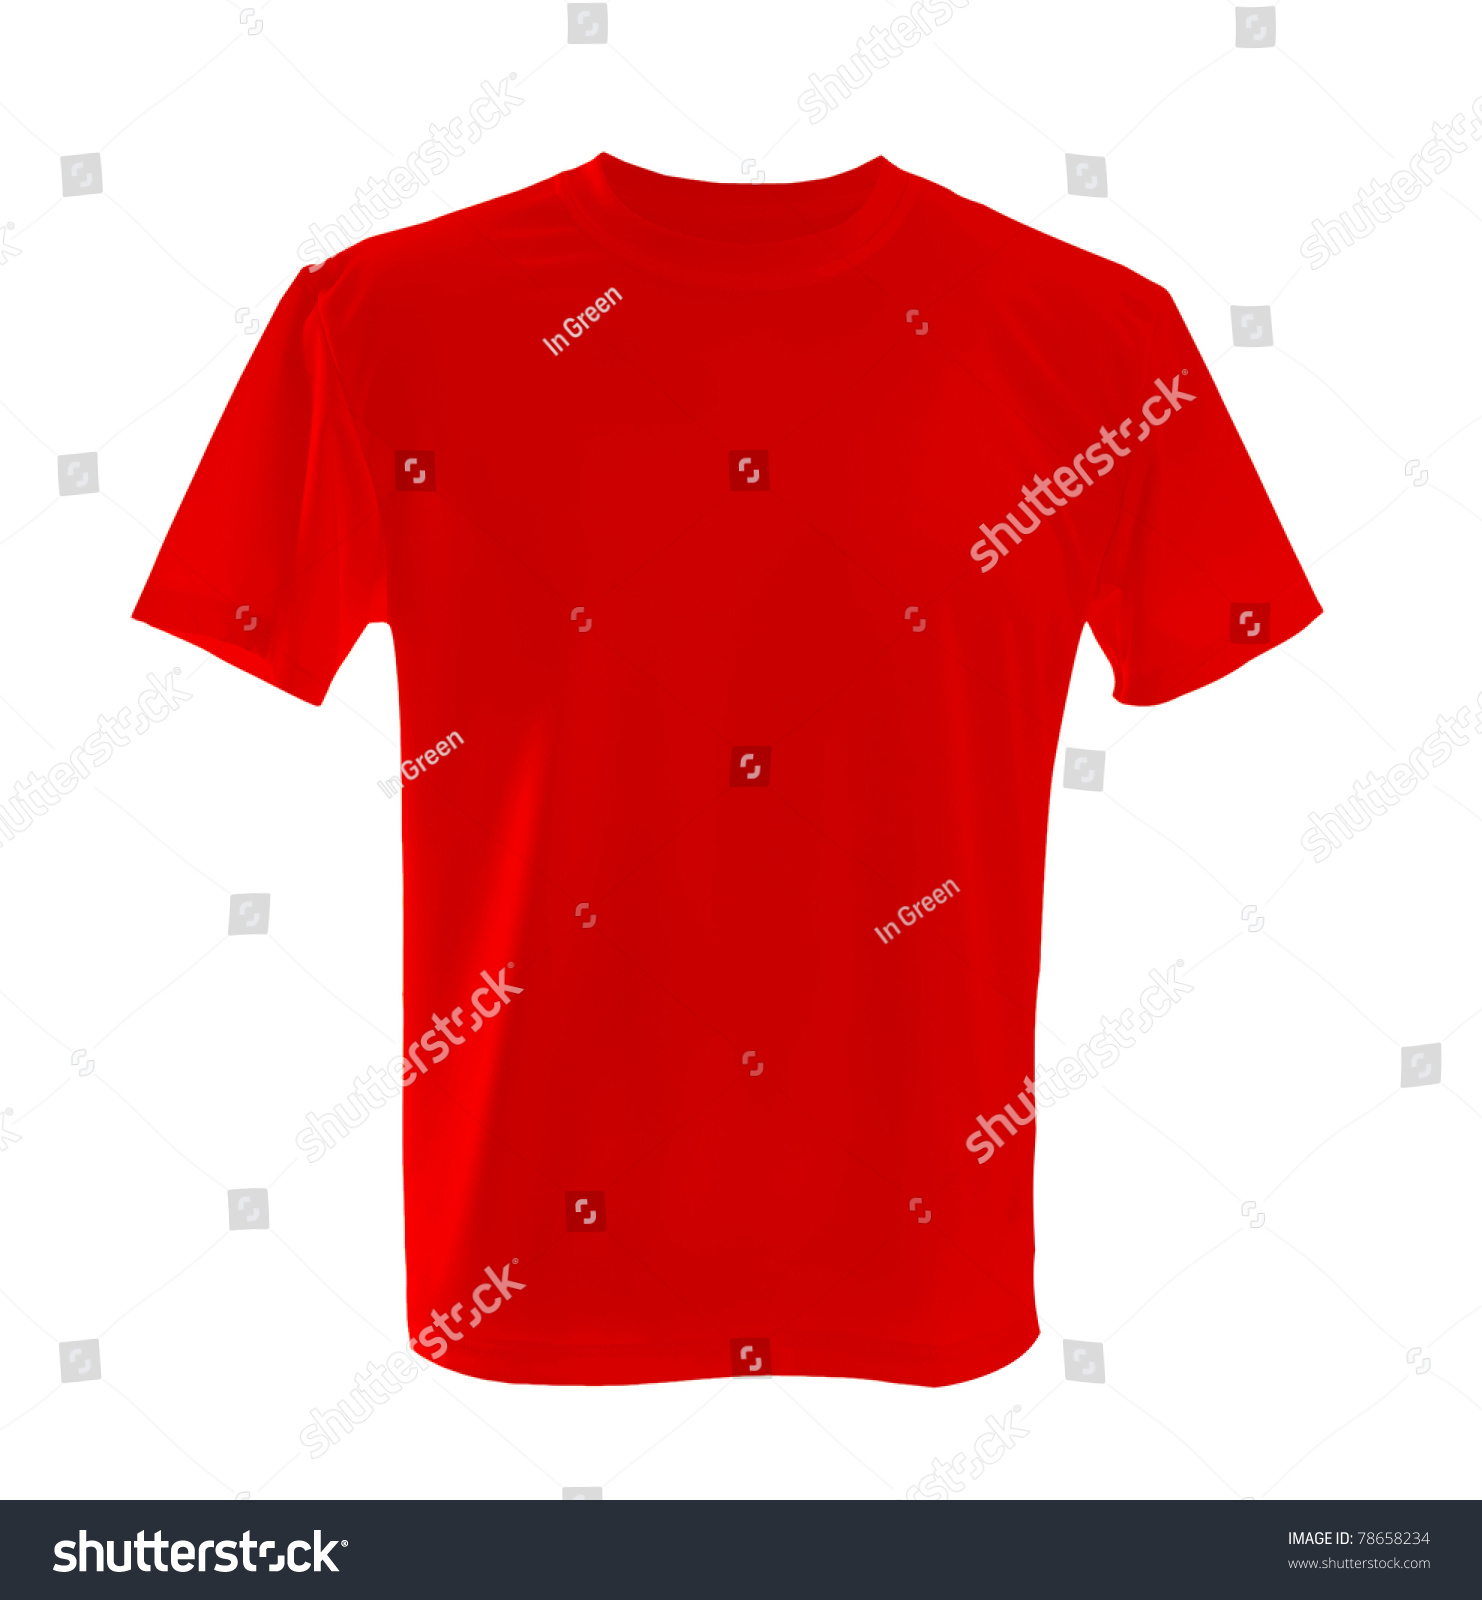 red tshirt be used design template stock photo 78658234 shutterstock. Black Bedroom Furniture Sets. Home Design Ideas